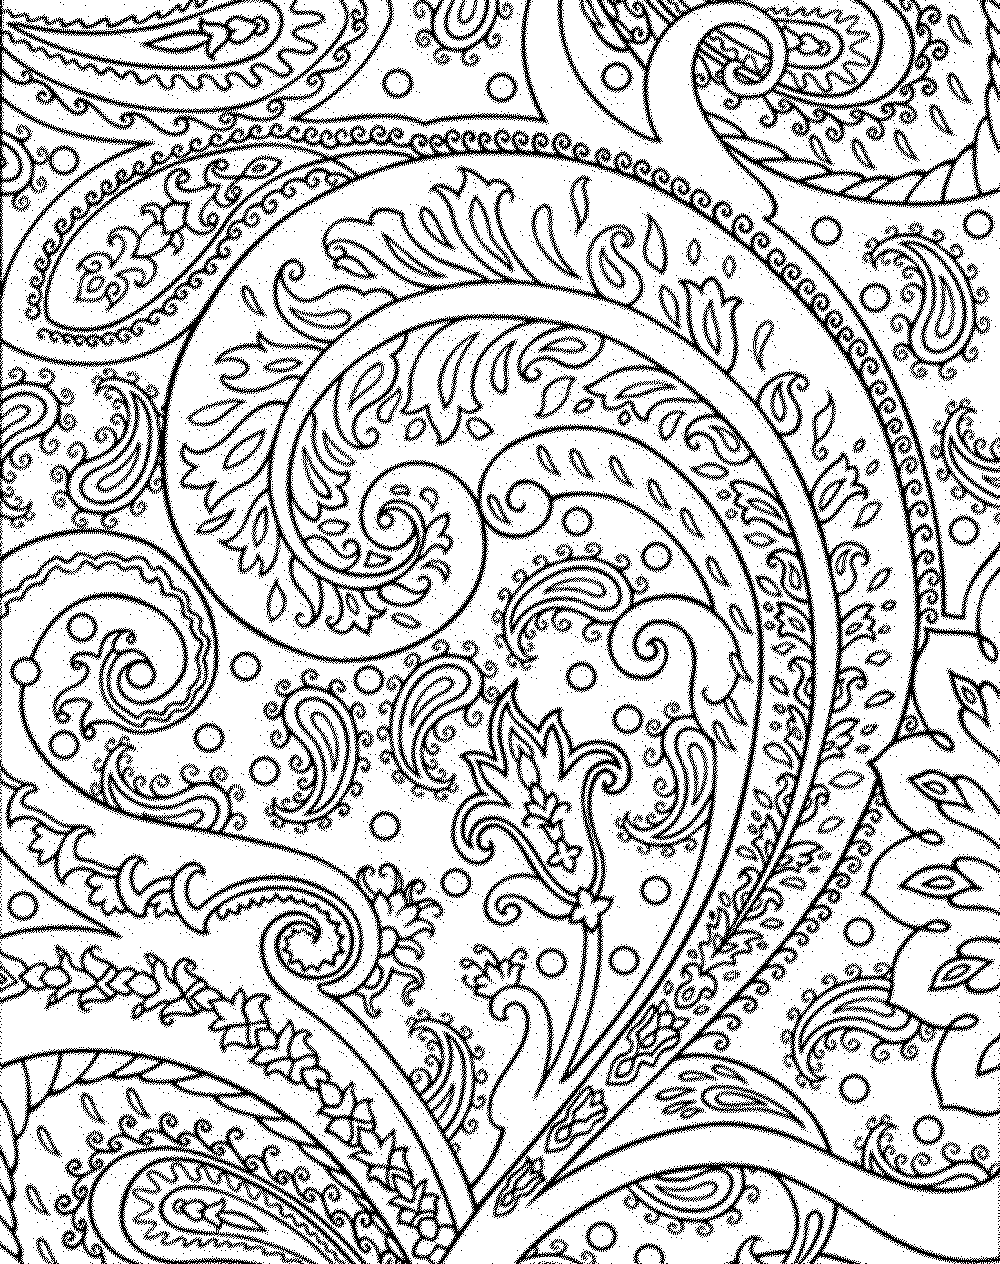 Coloring pages for adults hd